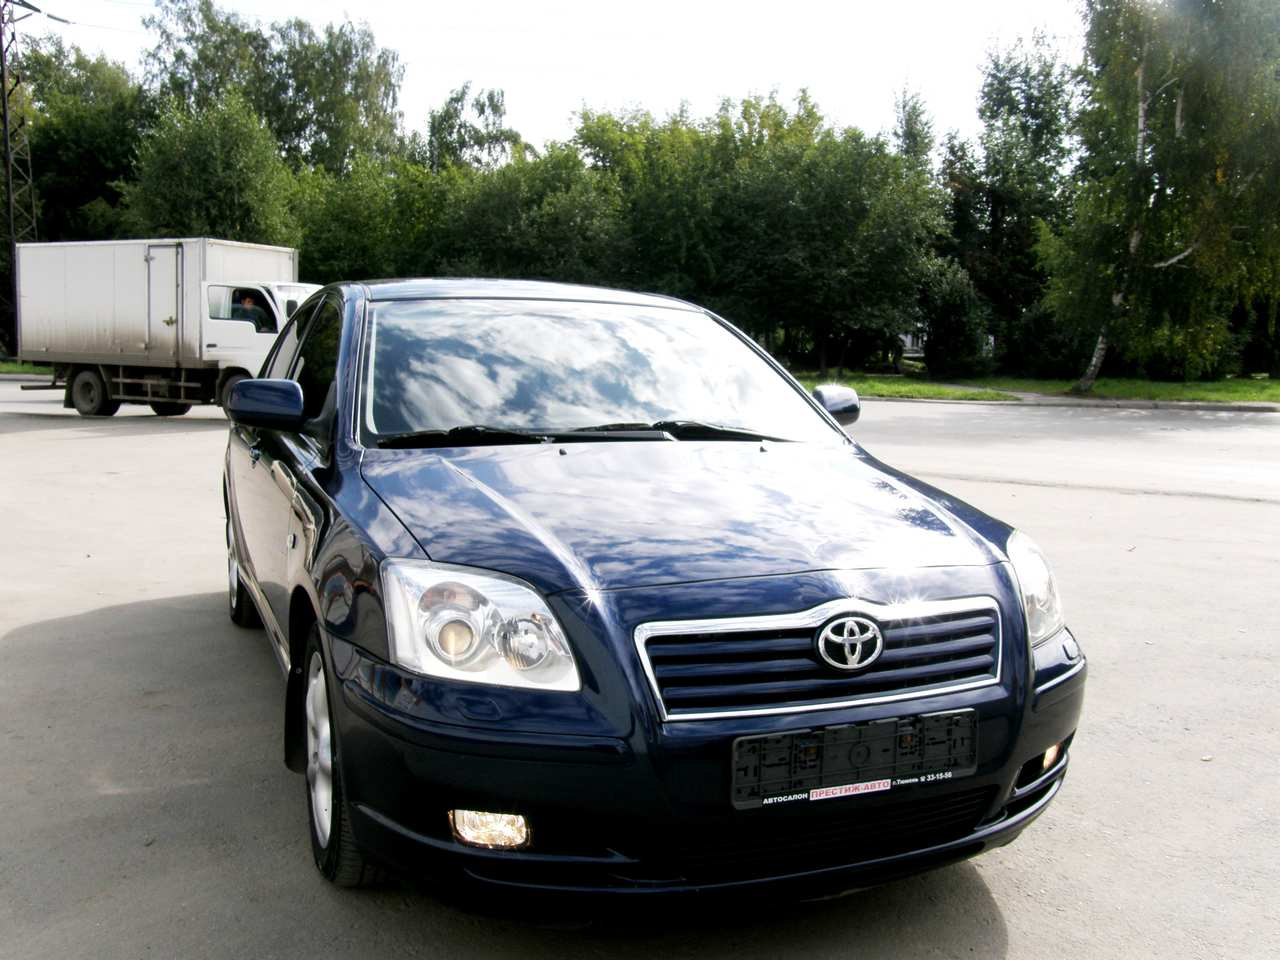 used 2004 toyota avensis photos 2000cc gasoline ff automatic for sale. Black Bedroom Furniture Sets. Home Design Ideas